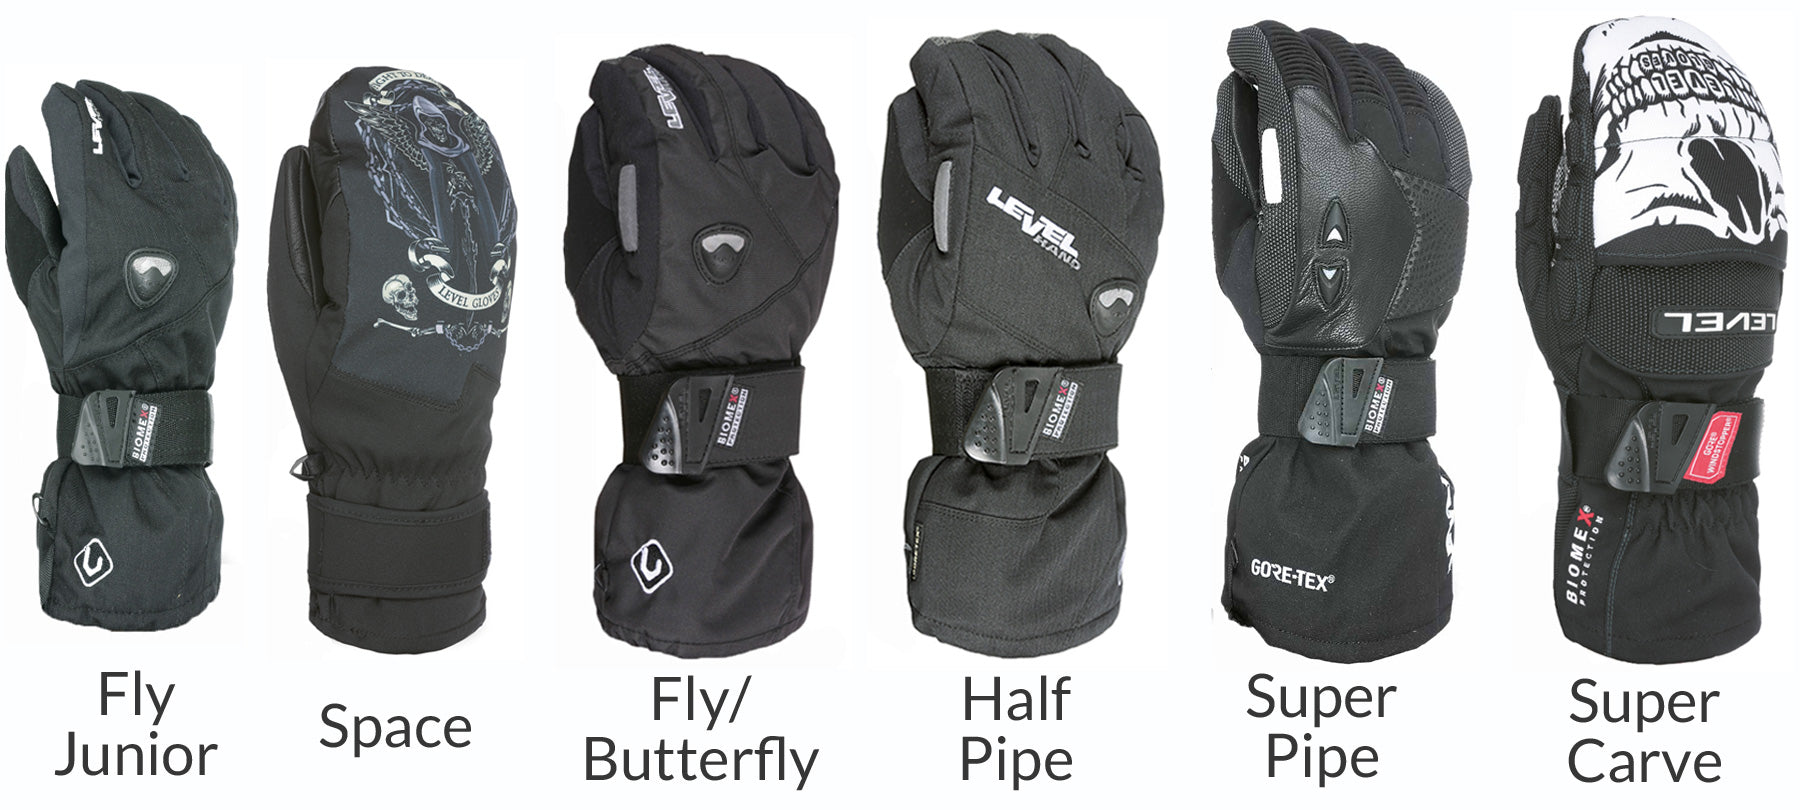 LEVEL Snowboard Gloves - Side by Side Comparison